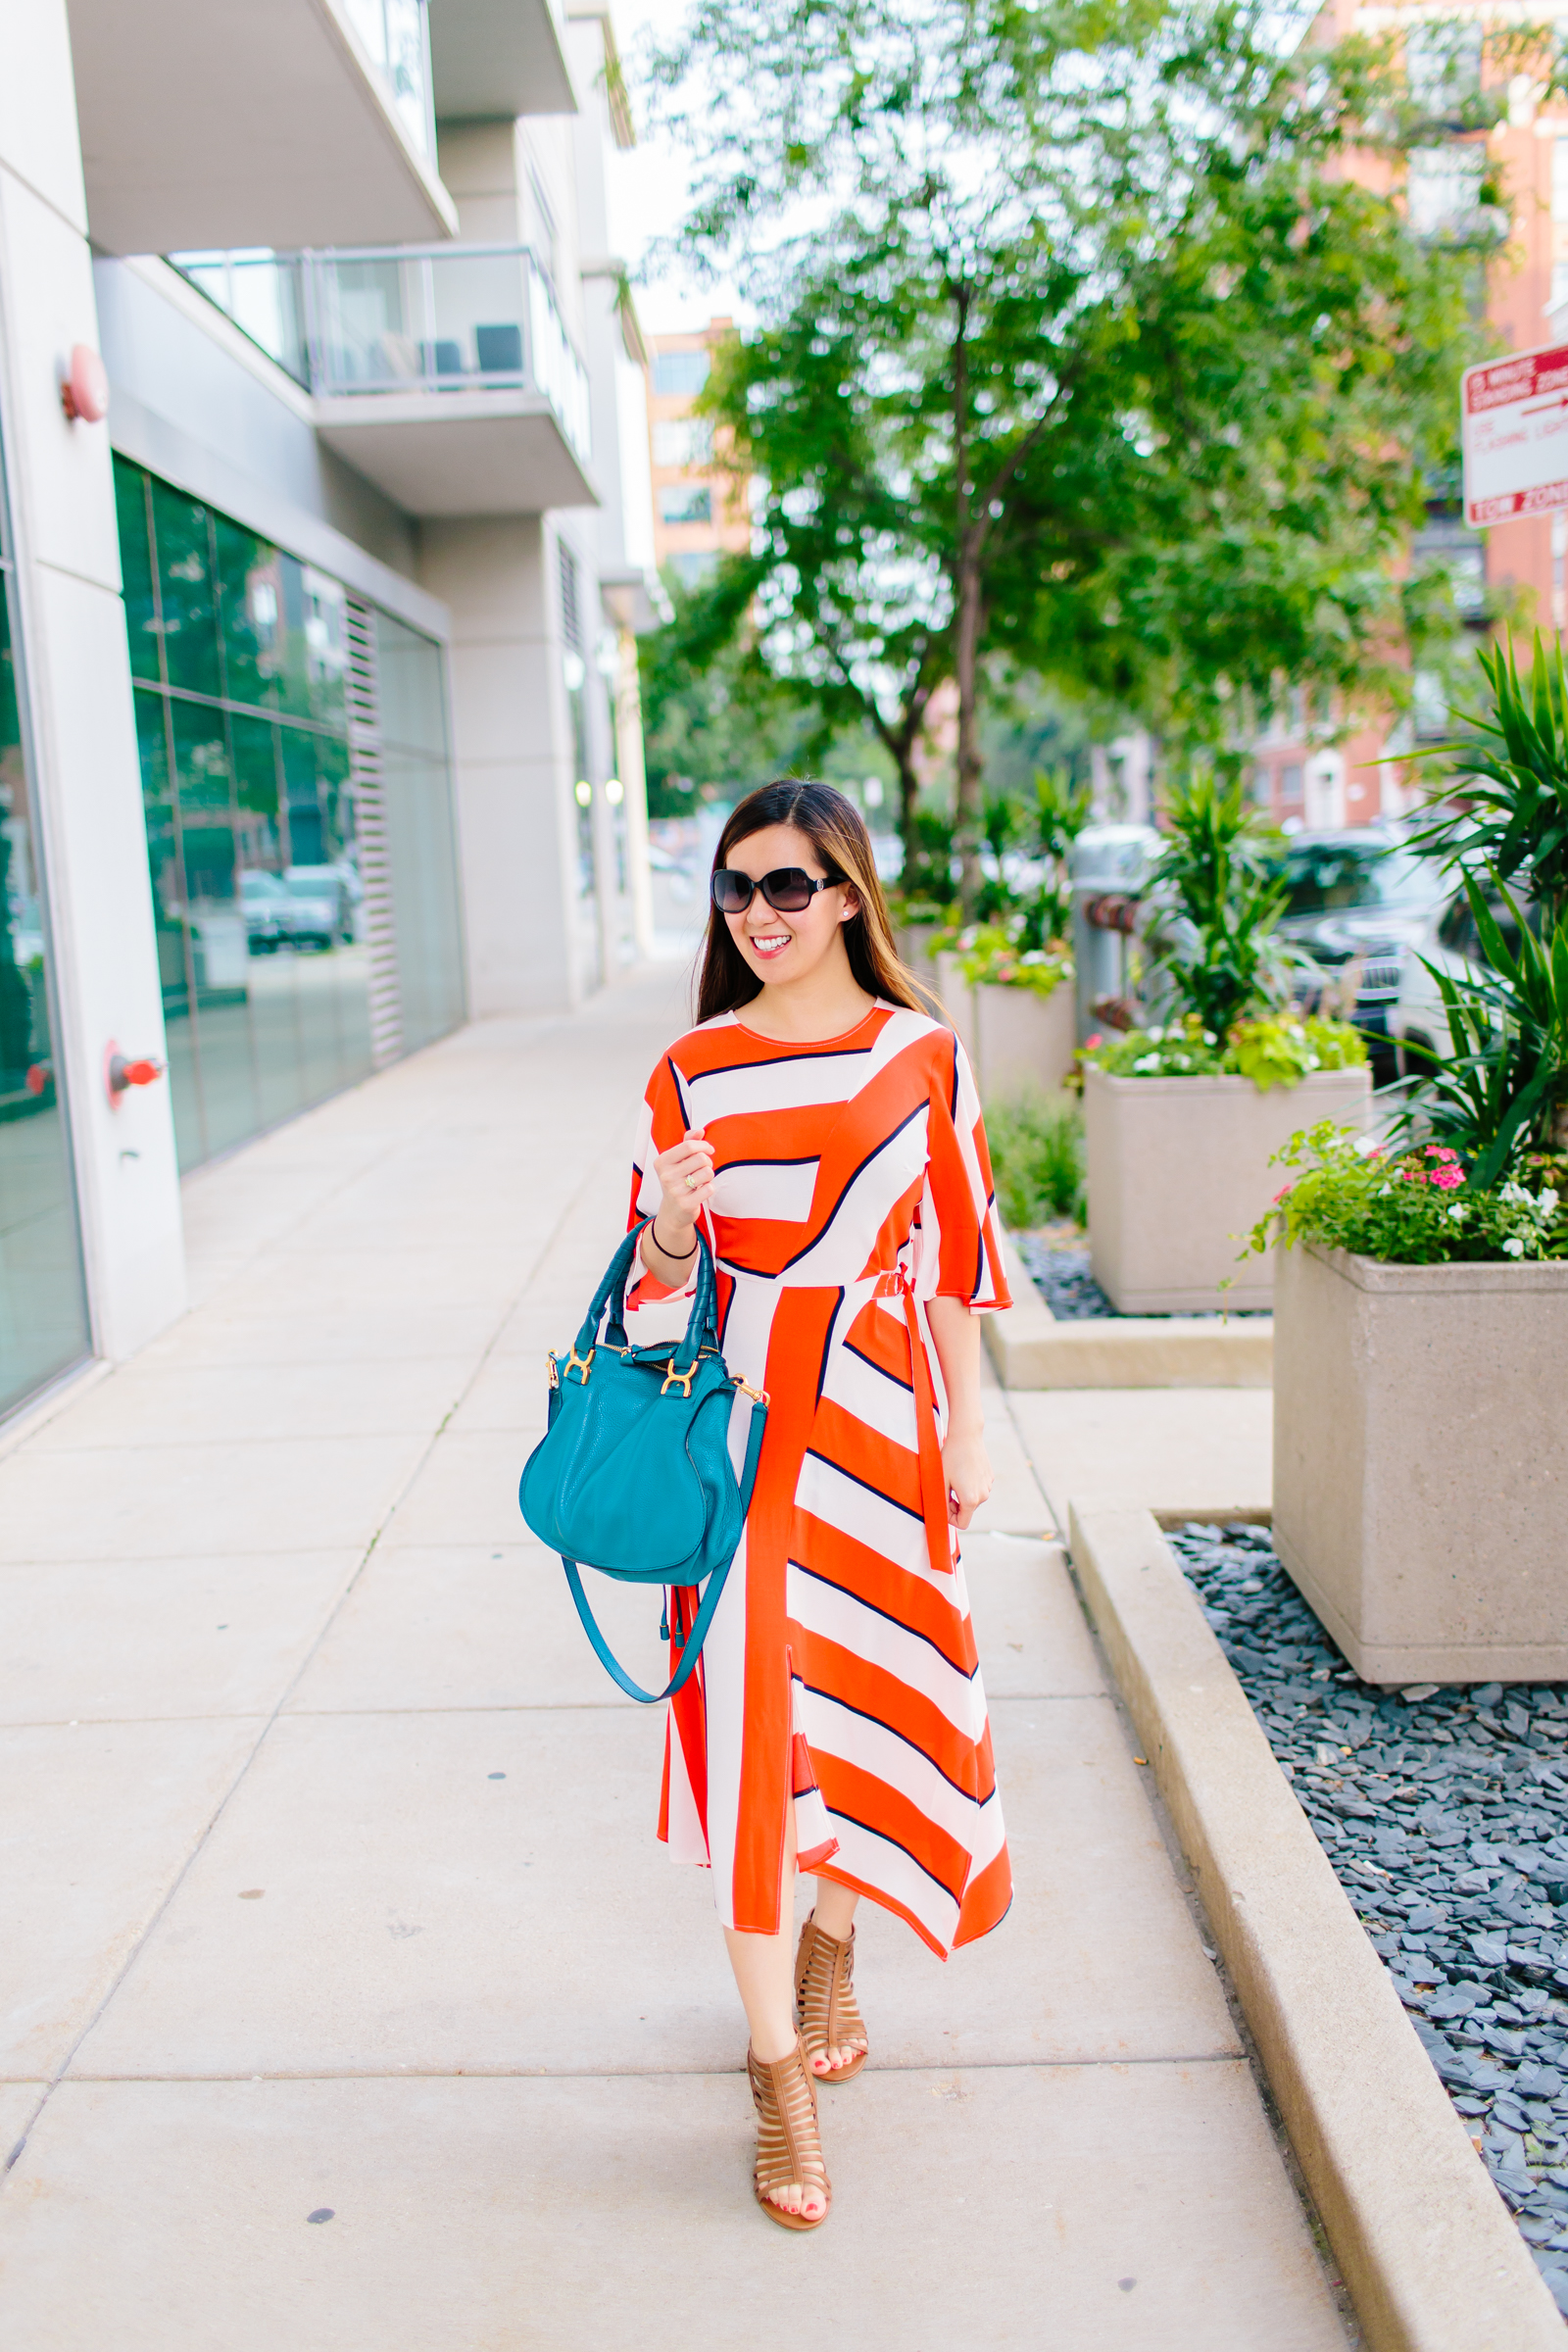 fa7f14e0c69 A Summer Style Tip for Petite or Short Women - How to Avoid Going to the